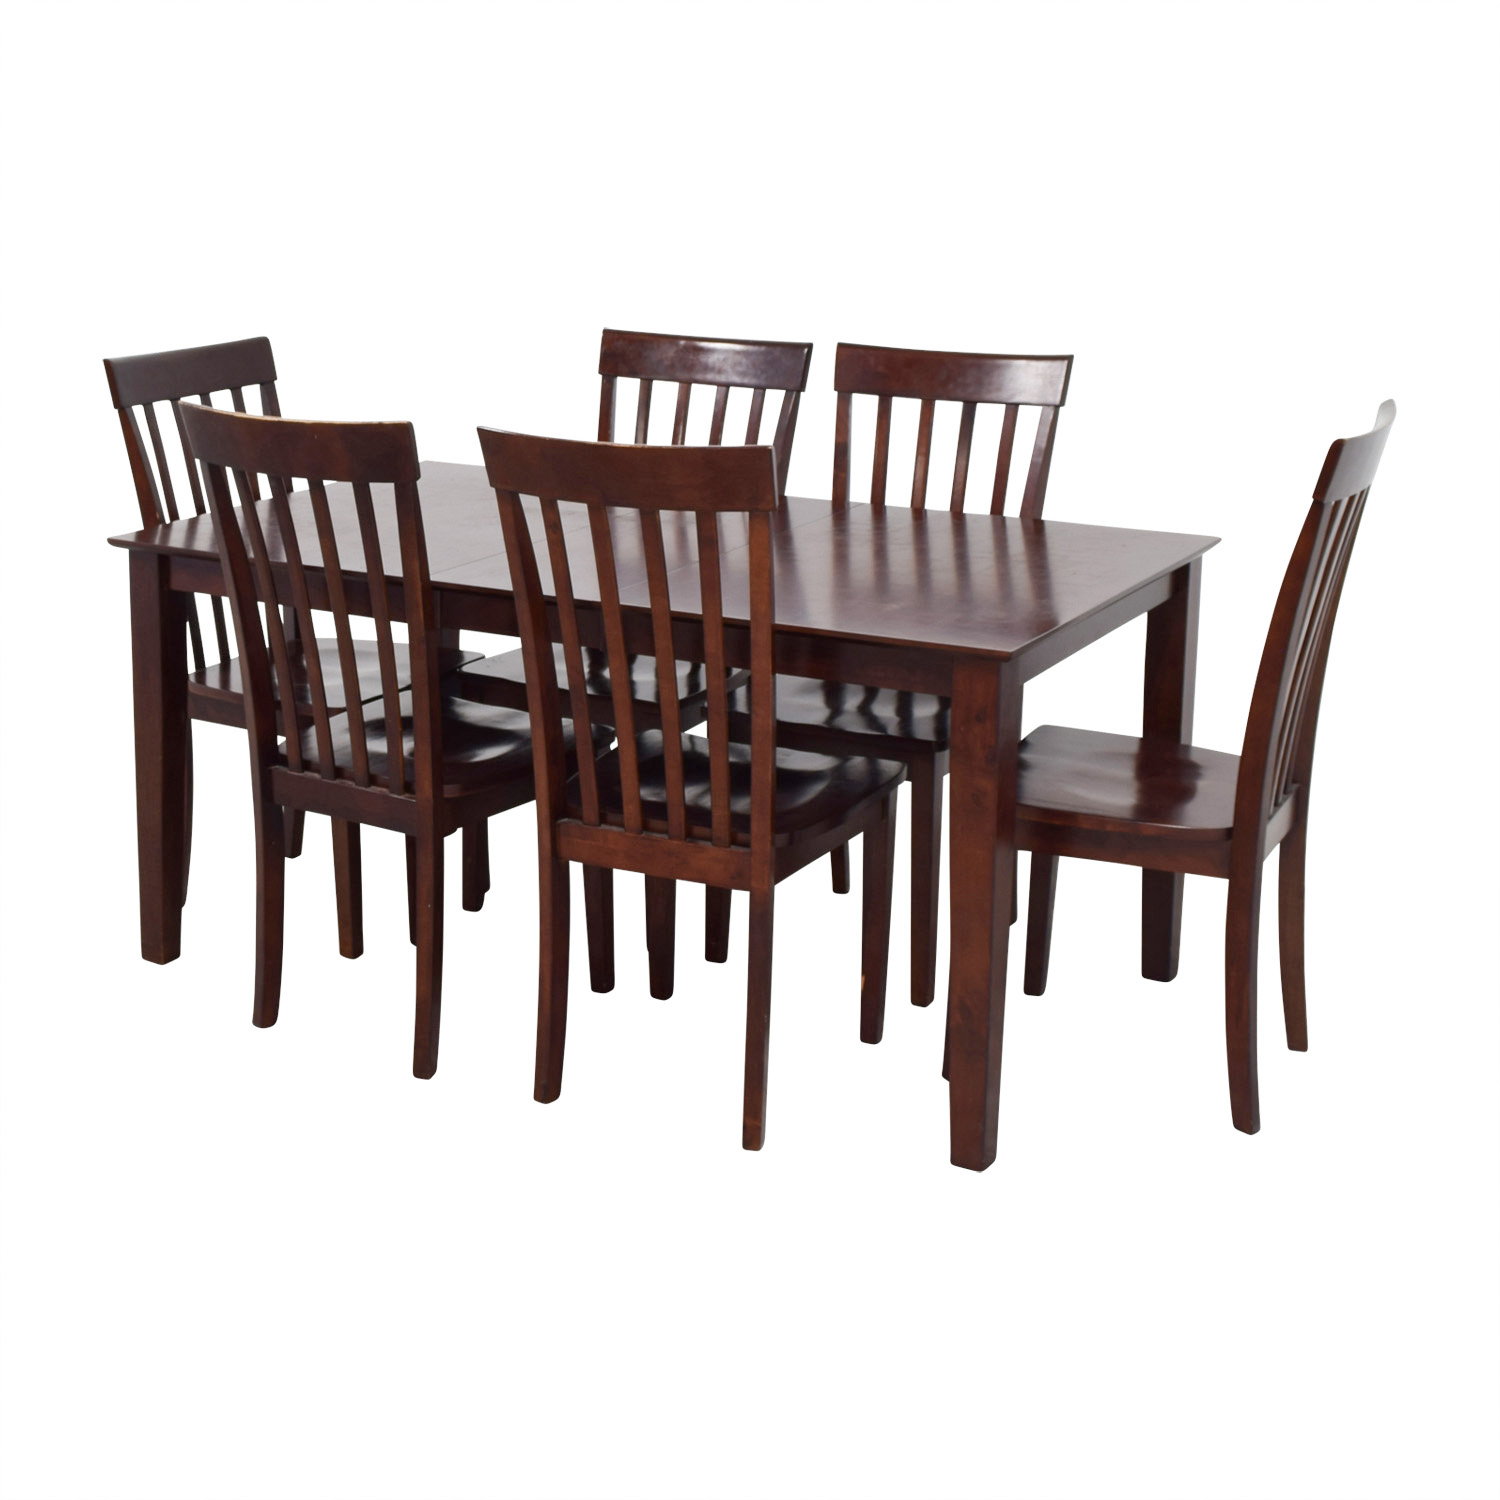 89 OFF Bobs Furniture Bobs Furniture Dining Room